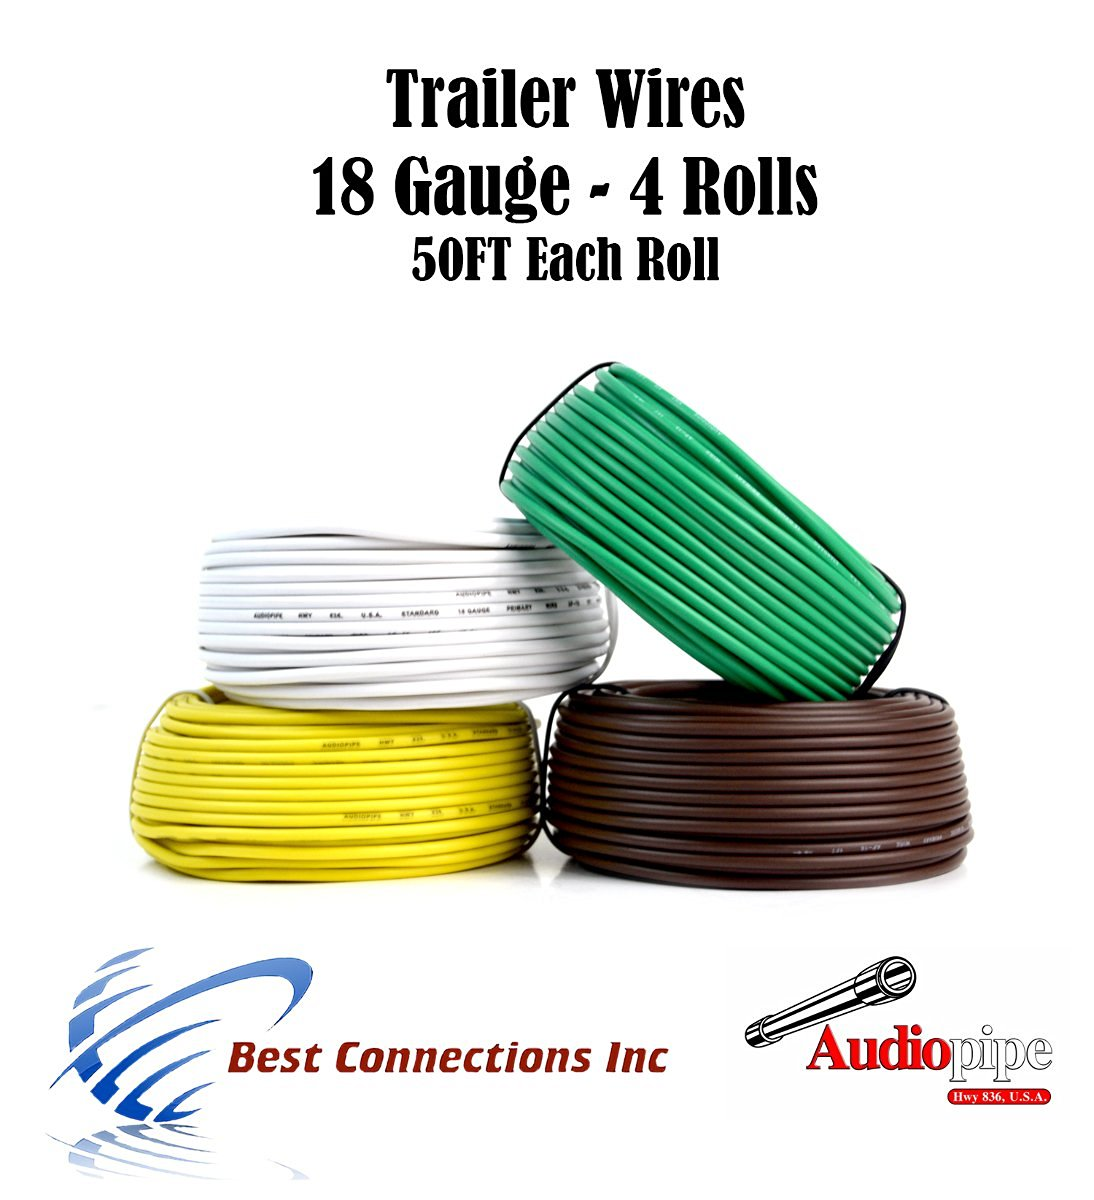 Cheap Wire Colors For Trailer Lights Find Wiring Harness Connect Get Quotations 4 Way Light Cable Led 50ft Each Roll 18 Gauge